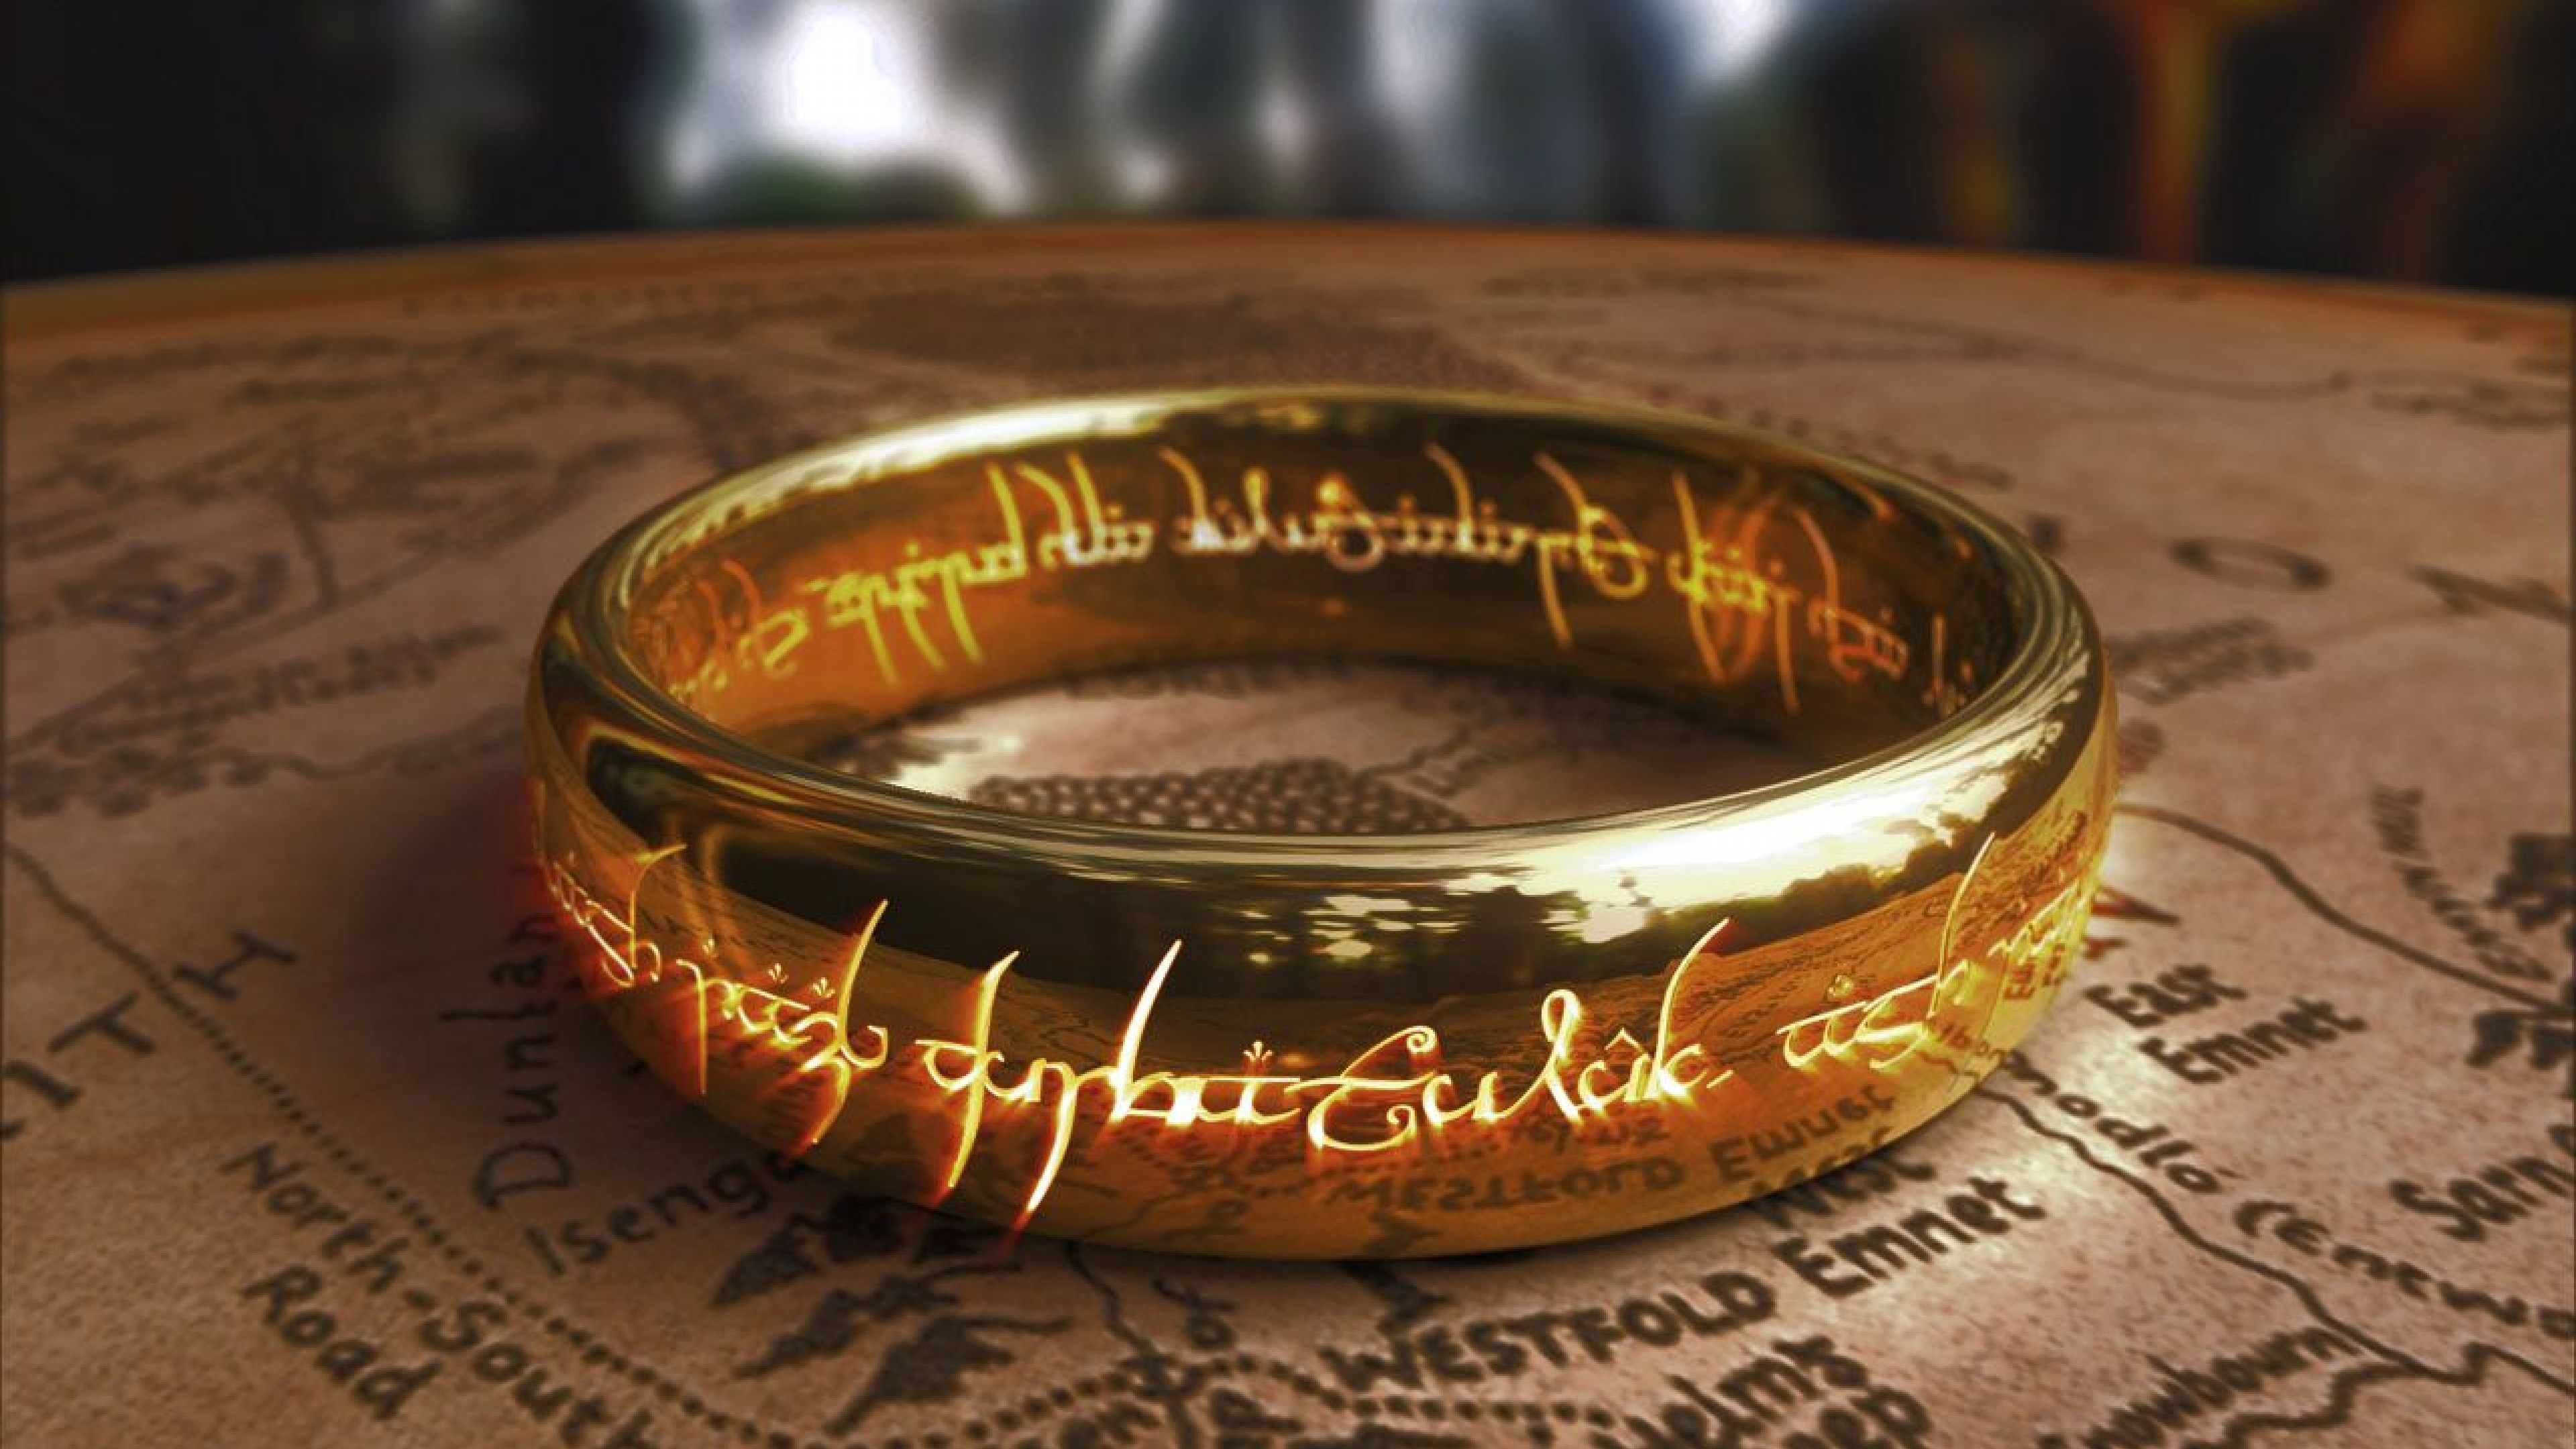 Lord Of The Rings Hd Wallpaper For Desktop And Mobiles 4k Ultra Hd